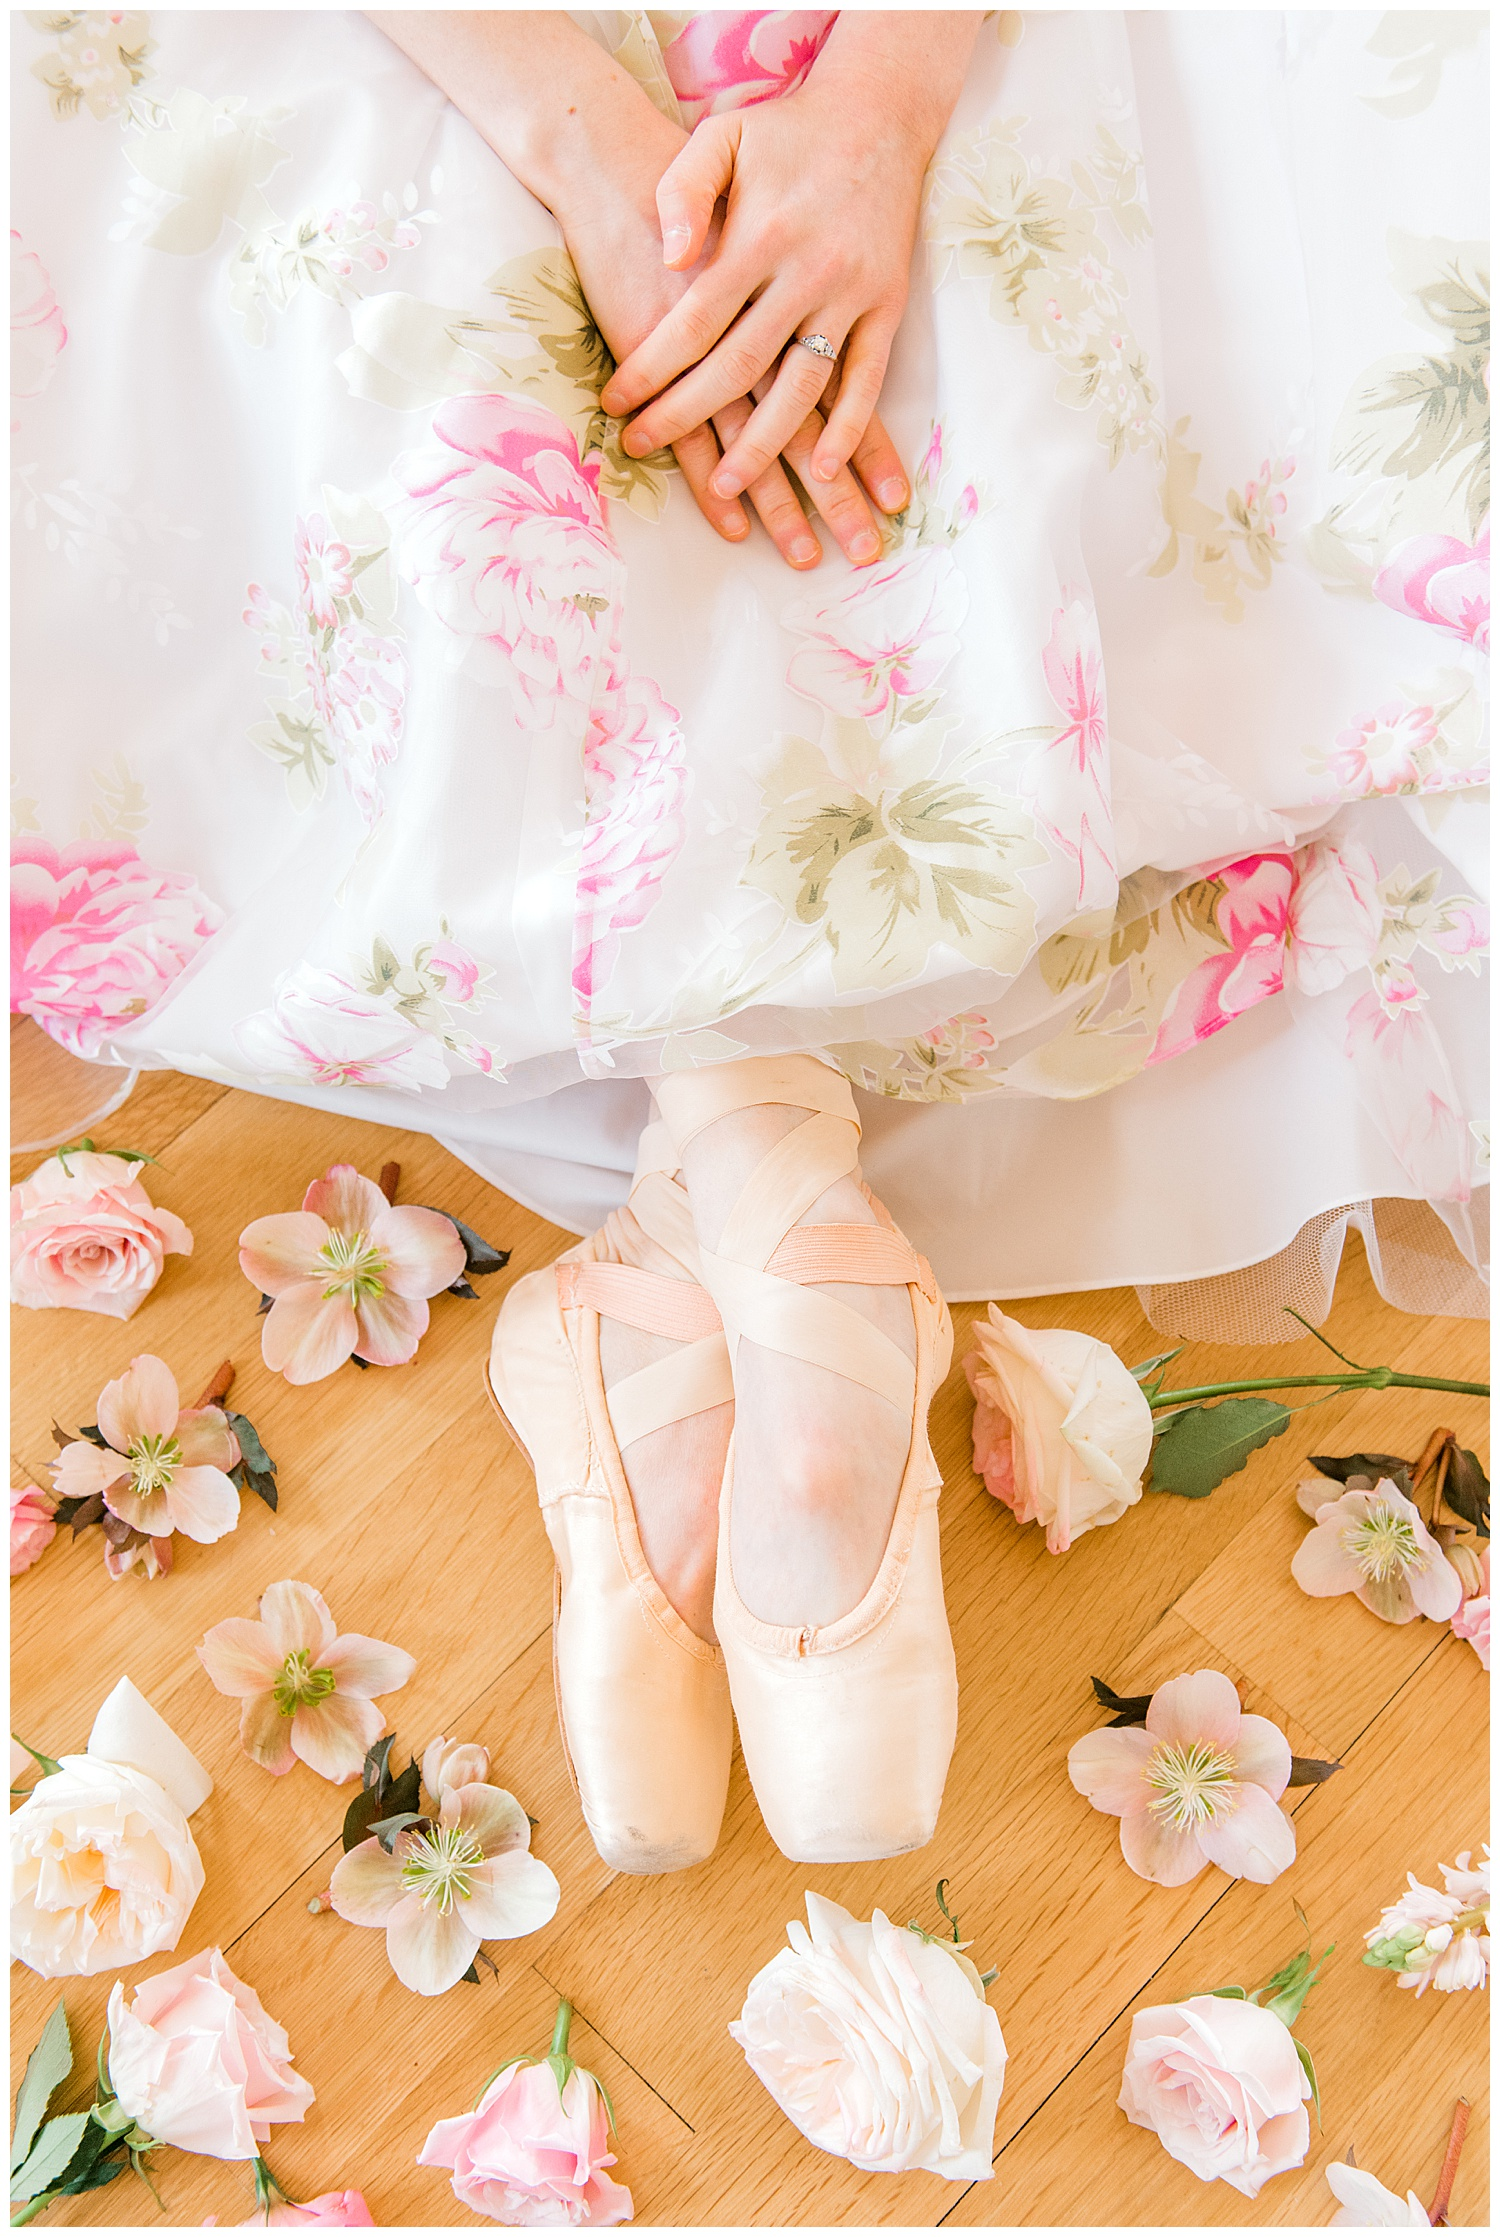 blush-ballerina-wedding-photography-newport-rhode-island-63.jpg